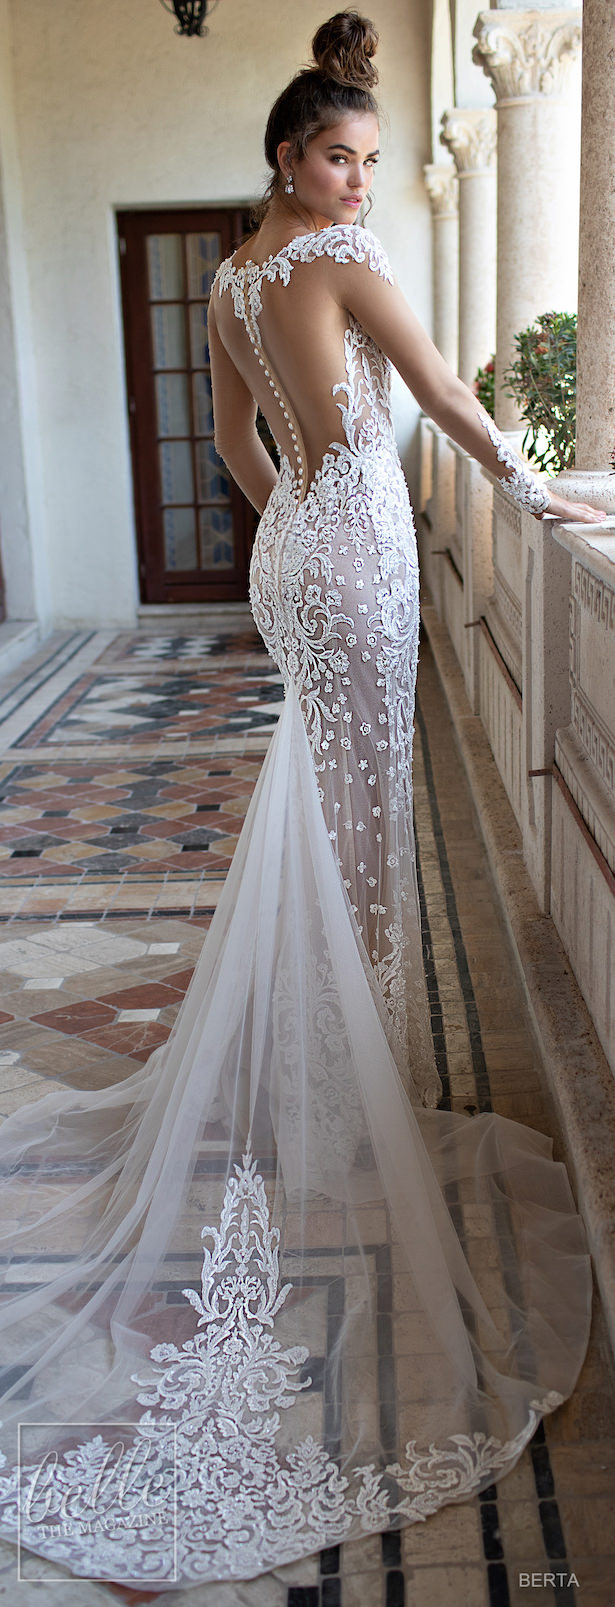 wedding dresses miami berta wedding dresses 2019 miami bridal collection 9370